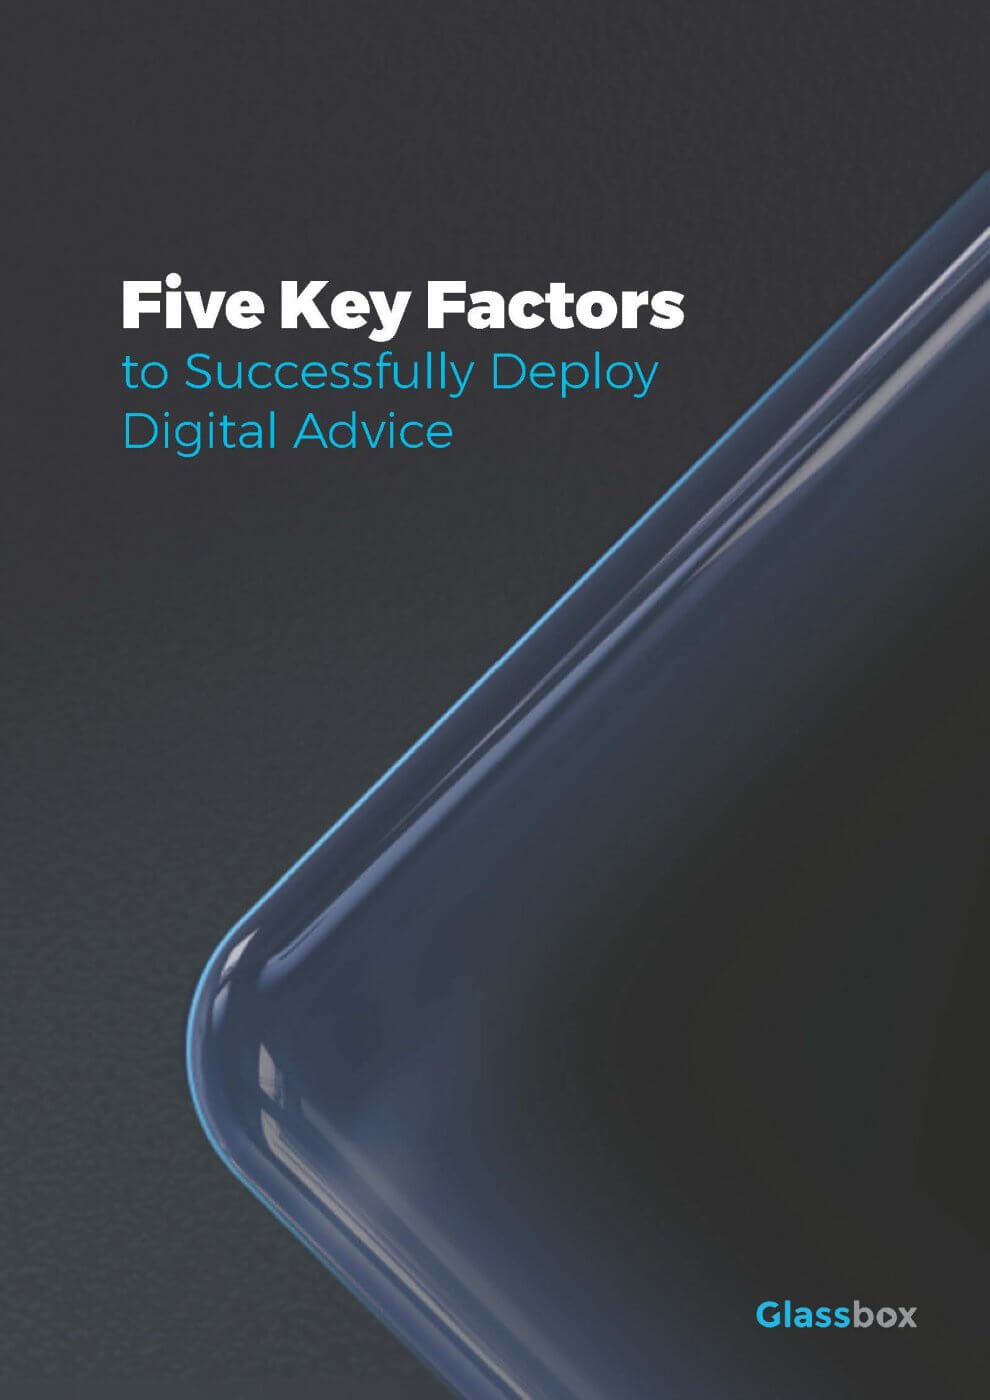 Five Key Factors to Successfully Deploy Digital Advice